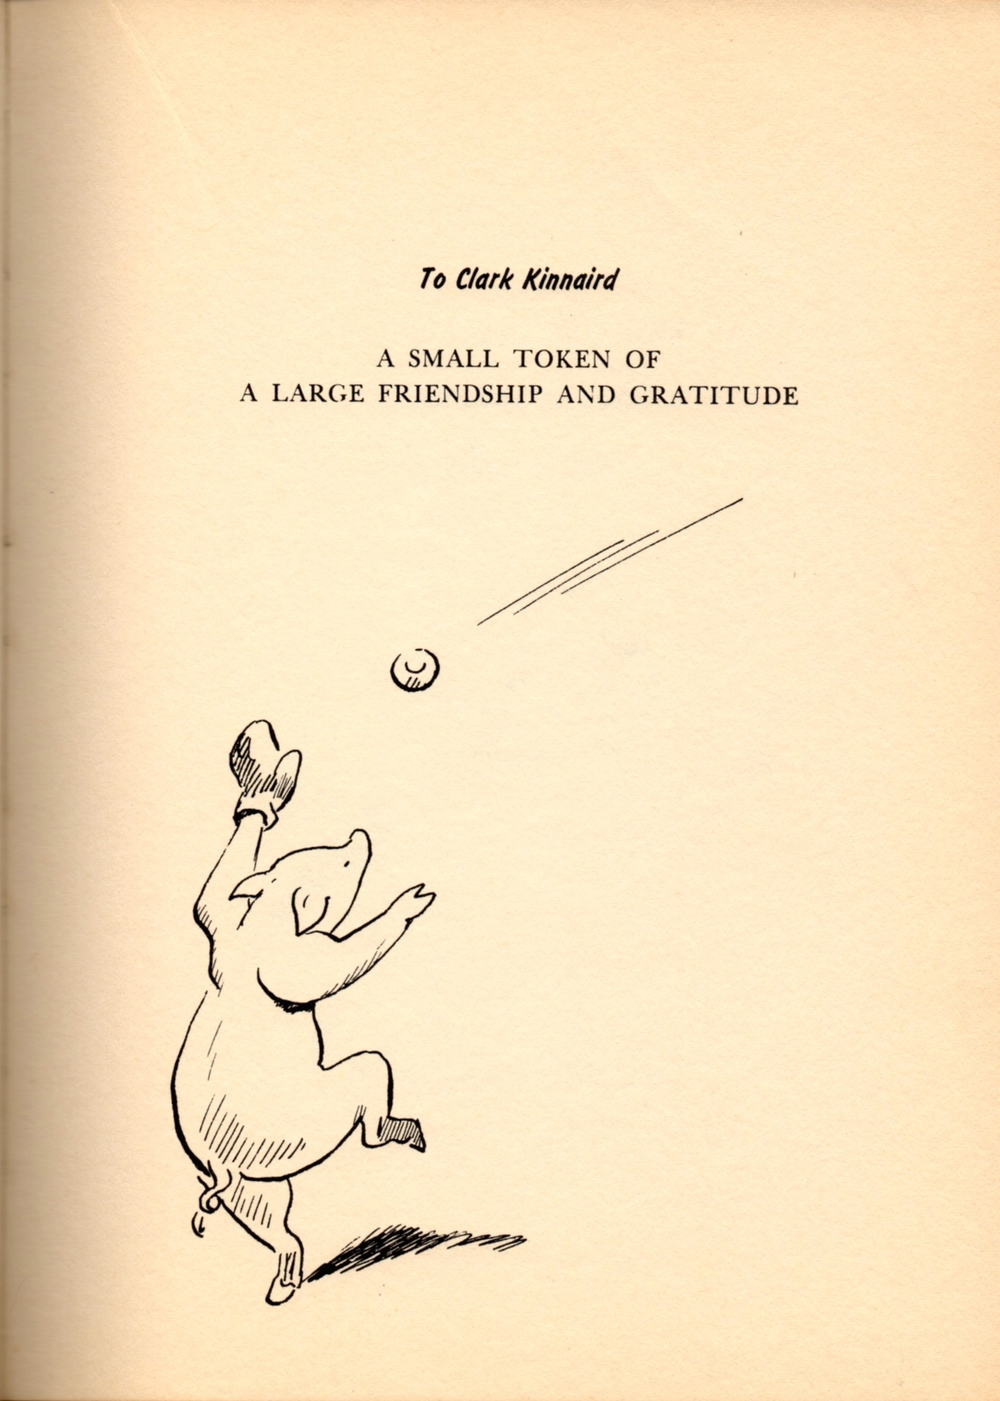 The dedication page